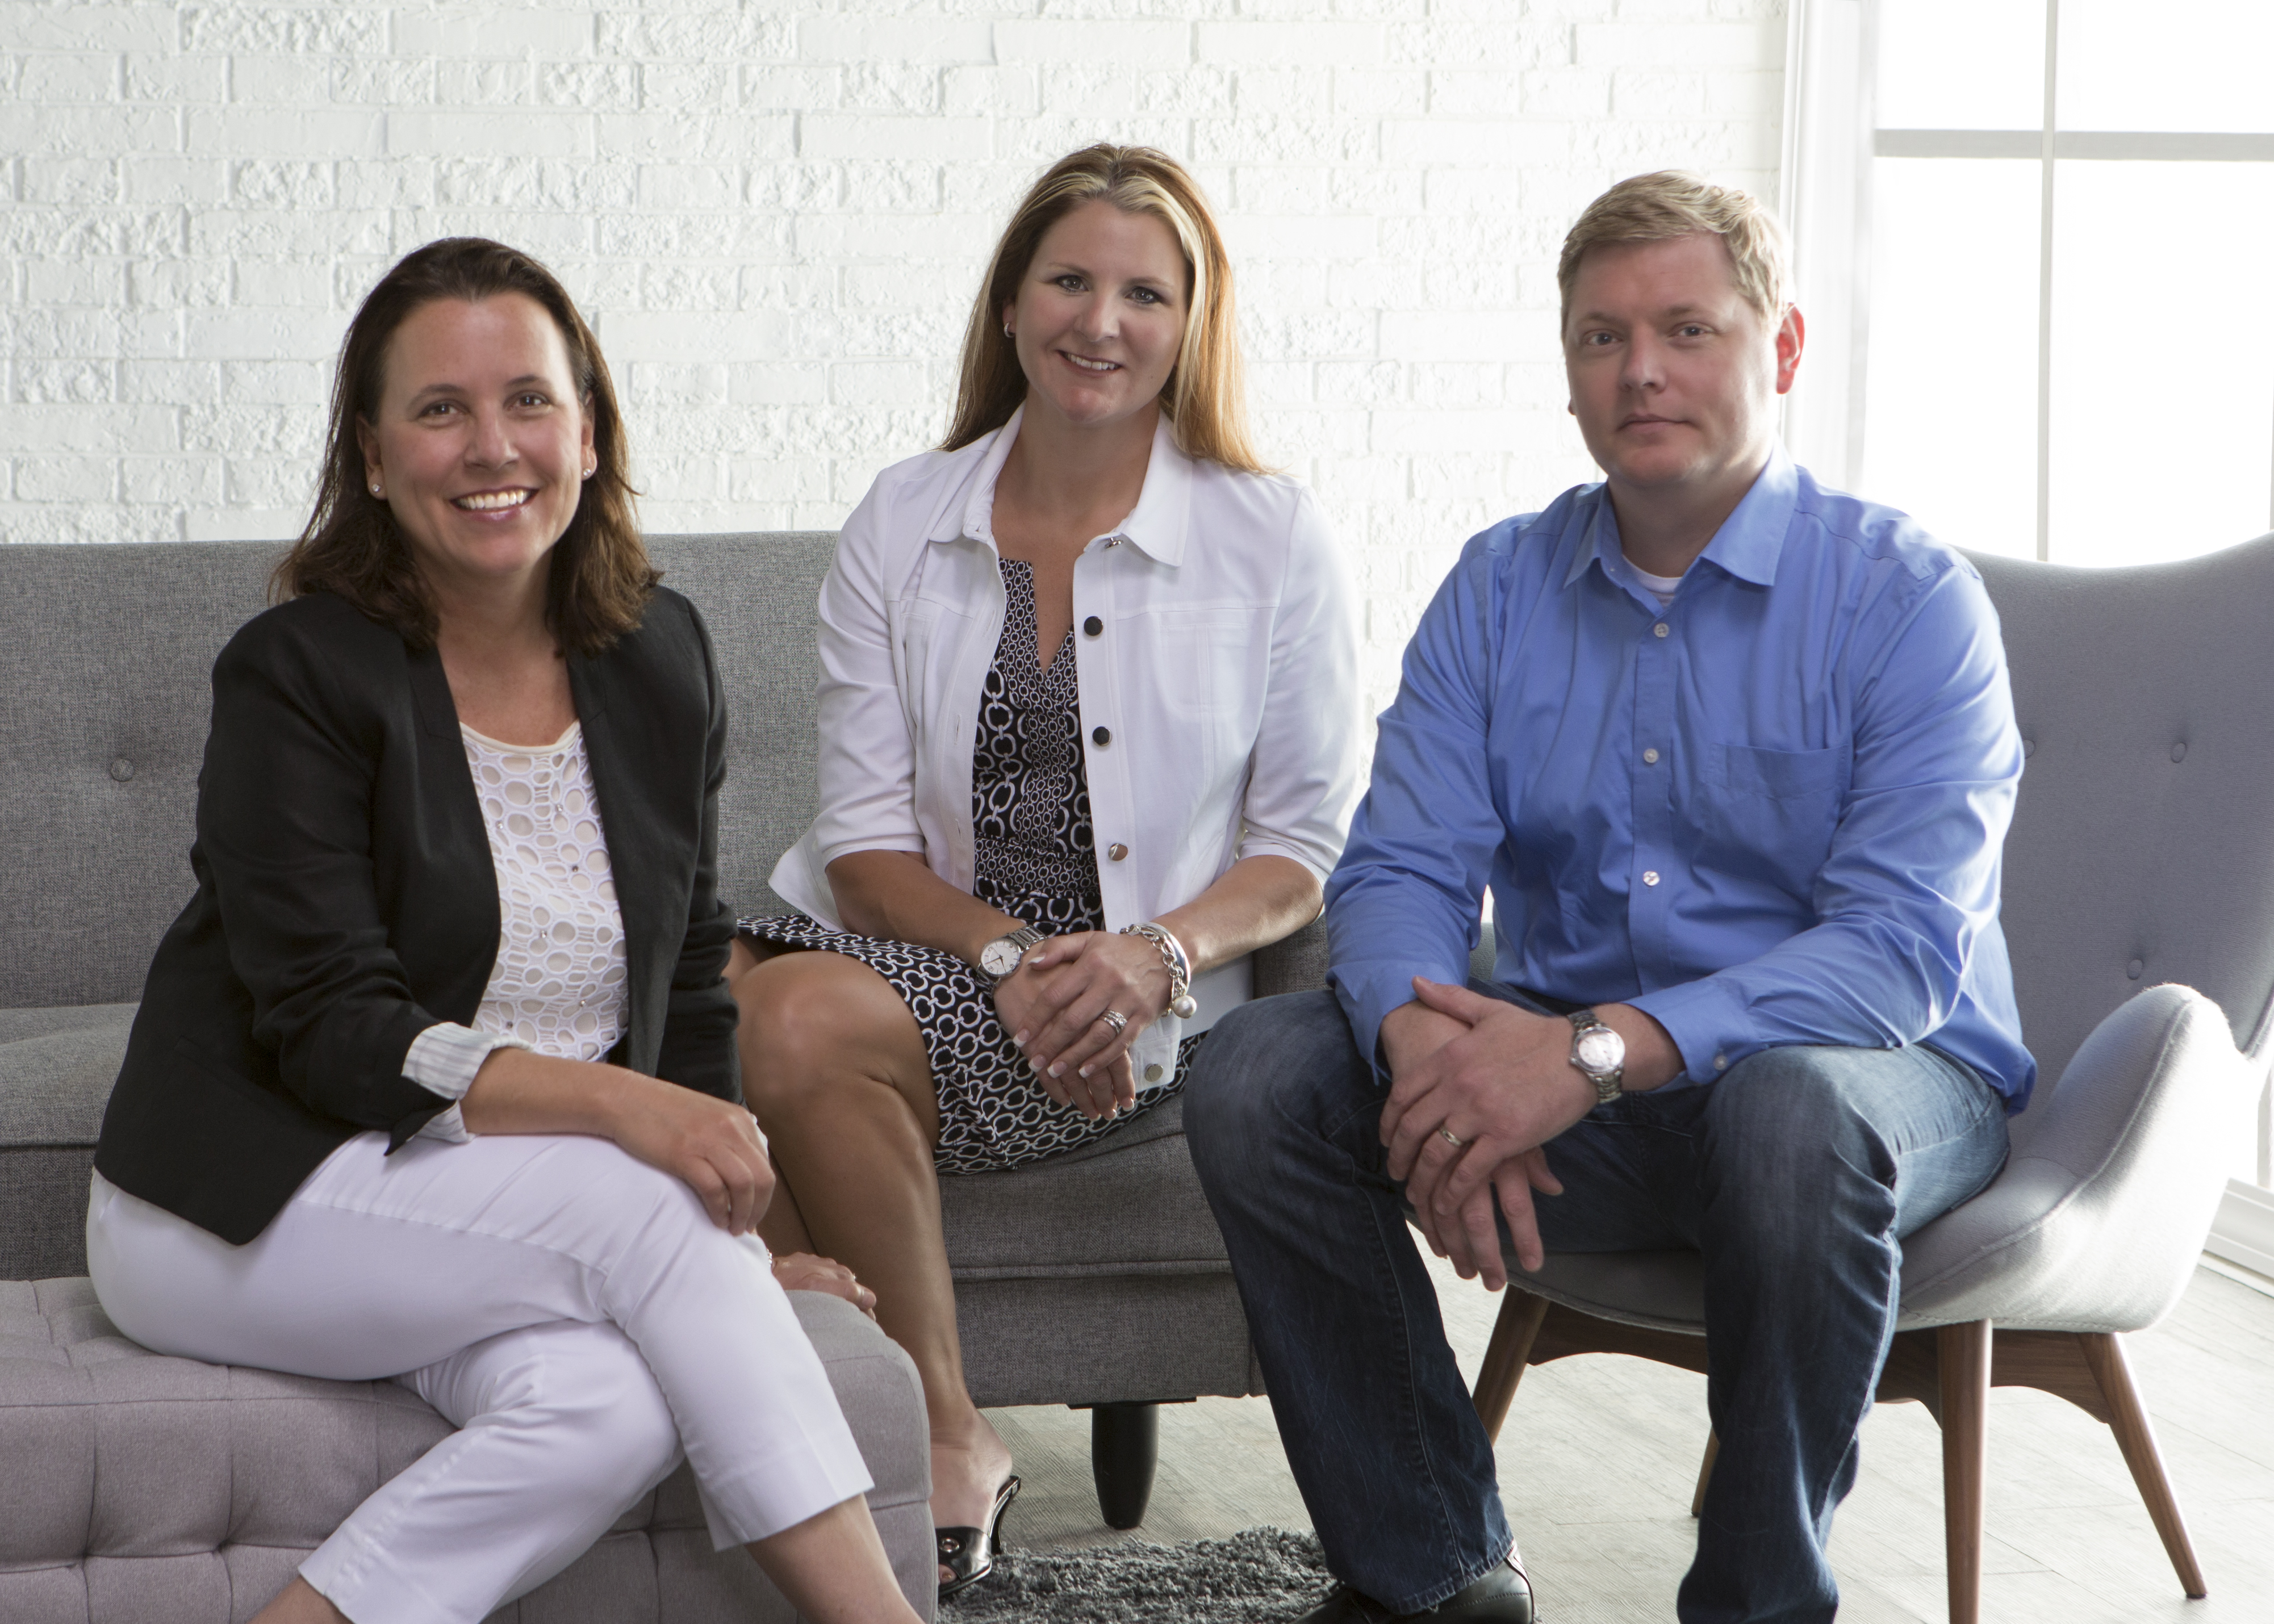 Newest members of Hayneedle's leadership team; from left: Tammy VanDonk, Rebecca Gray and Ryan Paulson. (Photo: Business Wire)